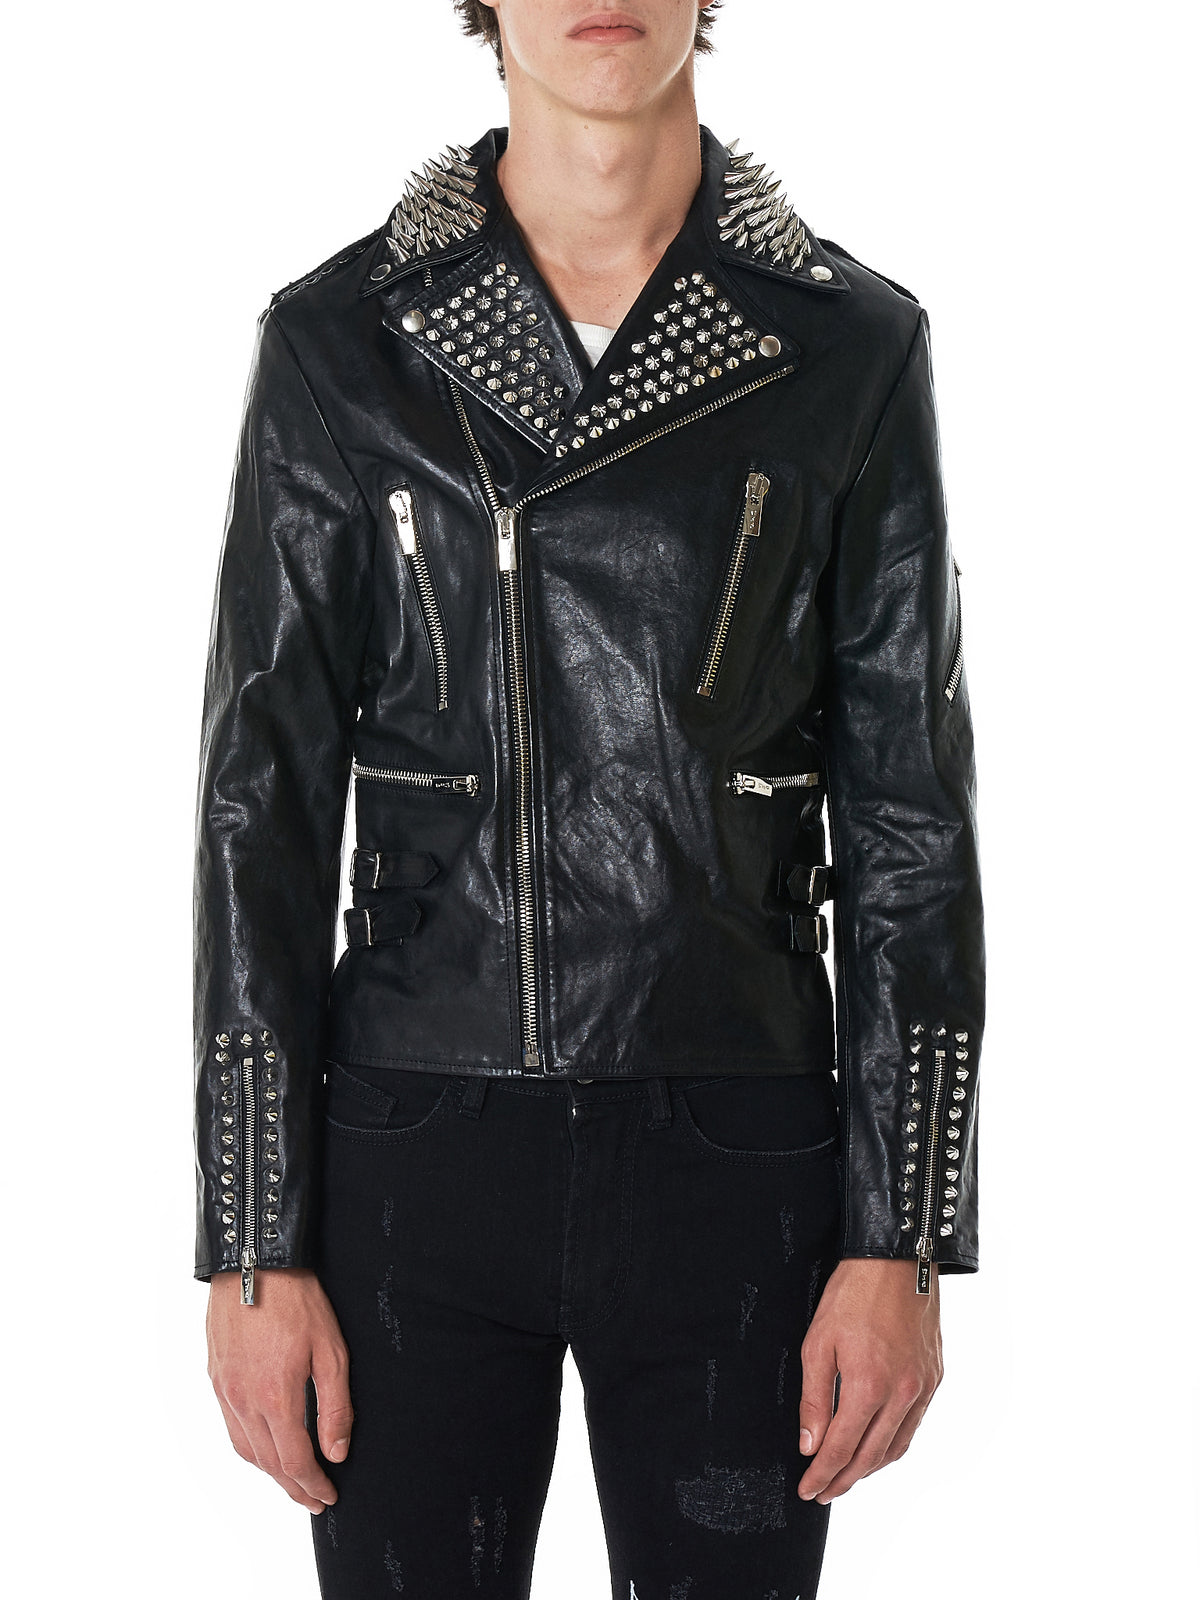 MJB (Marc Jacques Burton) Leather Jacket - Hlorenzo Front